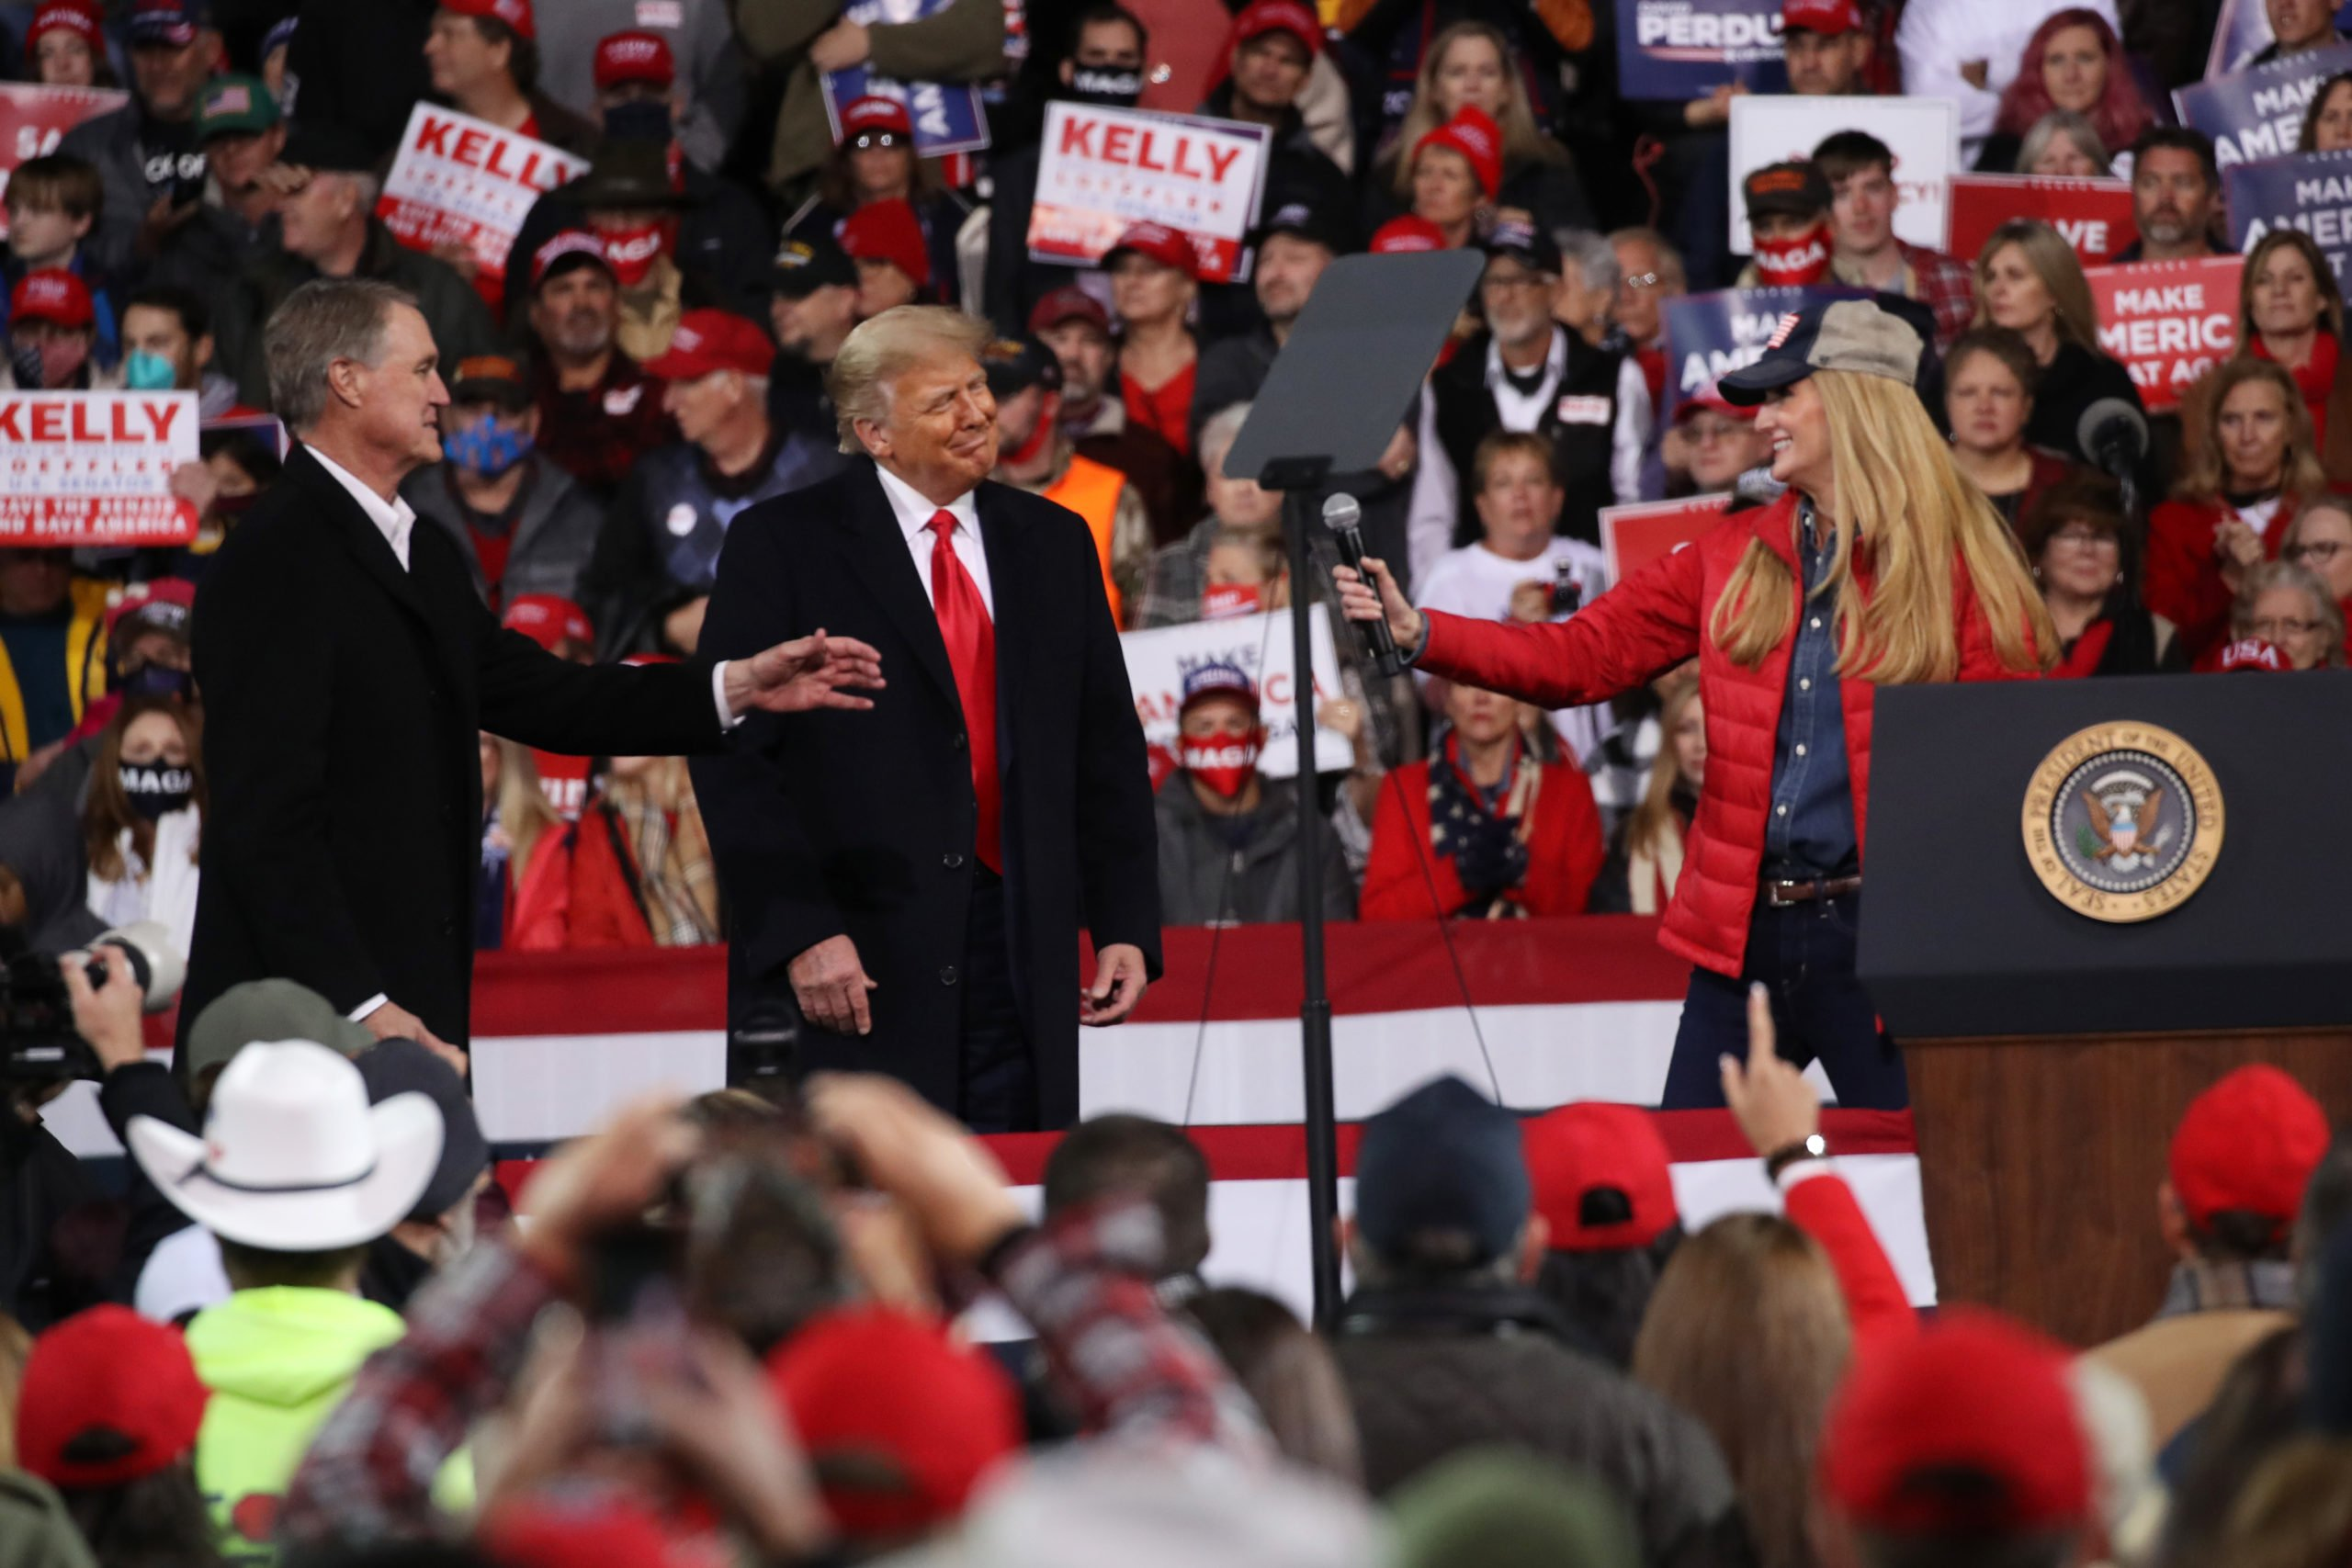 VALDOSTA, GEORGIA - DECEMBER 05: President Donald Trump attends a rally in support of Sen. David Perdue (R-GA) and Sen. Kelly Loeffler (R-GA) on December 05, 2020 in Valdosta, Georgia. The rally with the senators comes ahead of a crucial runoff election for Perdue and Loeffler on January 5th which will decide who controls the United States senate. (Spencer Platt/Getty Images)